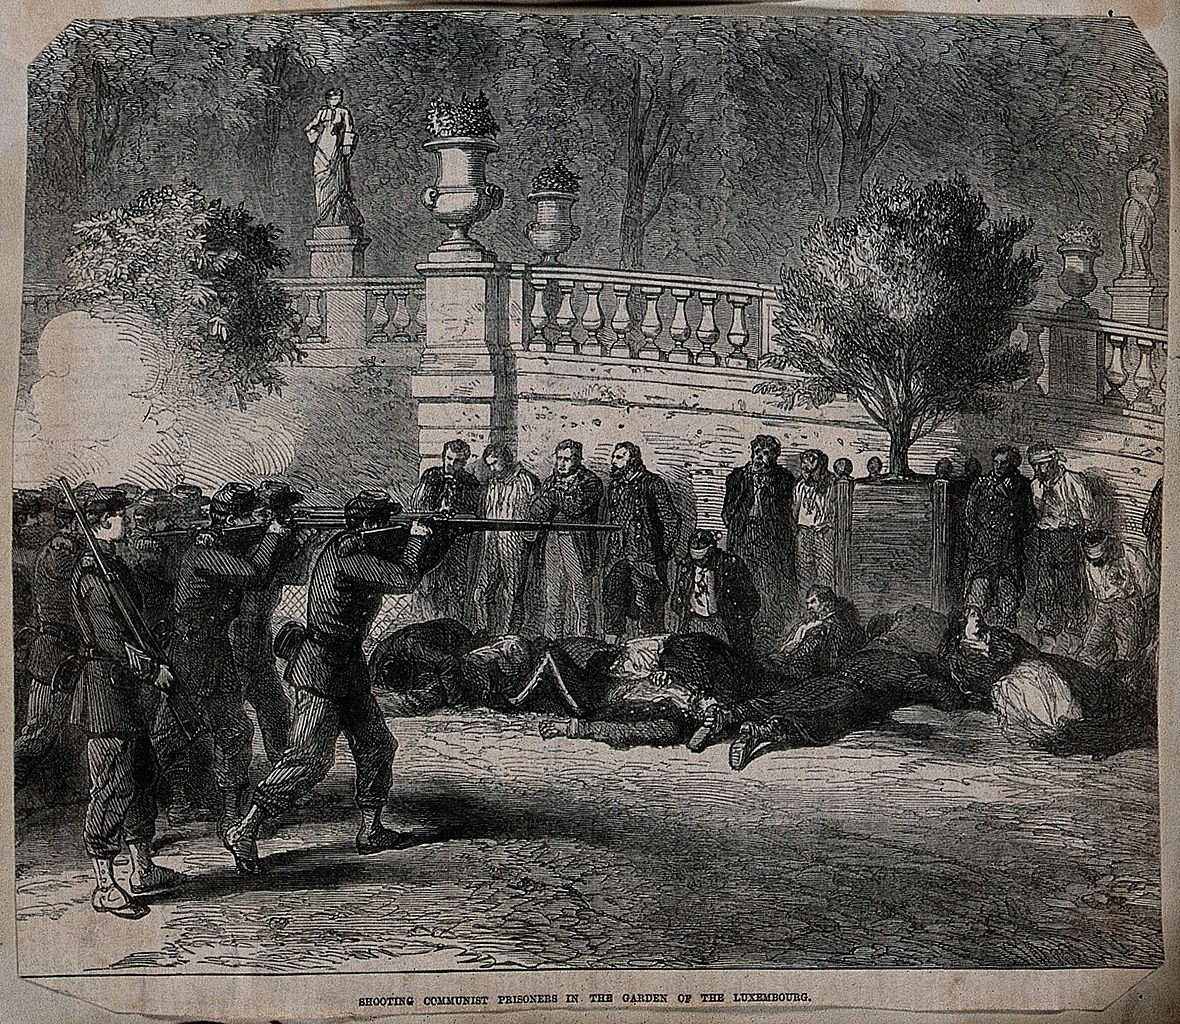 Execution of Communist prisoners in the garden of the Wellcome, photo wellcomeimages.org